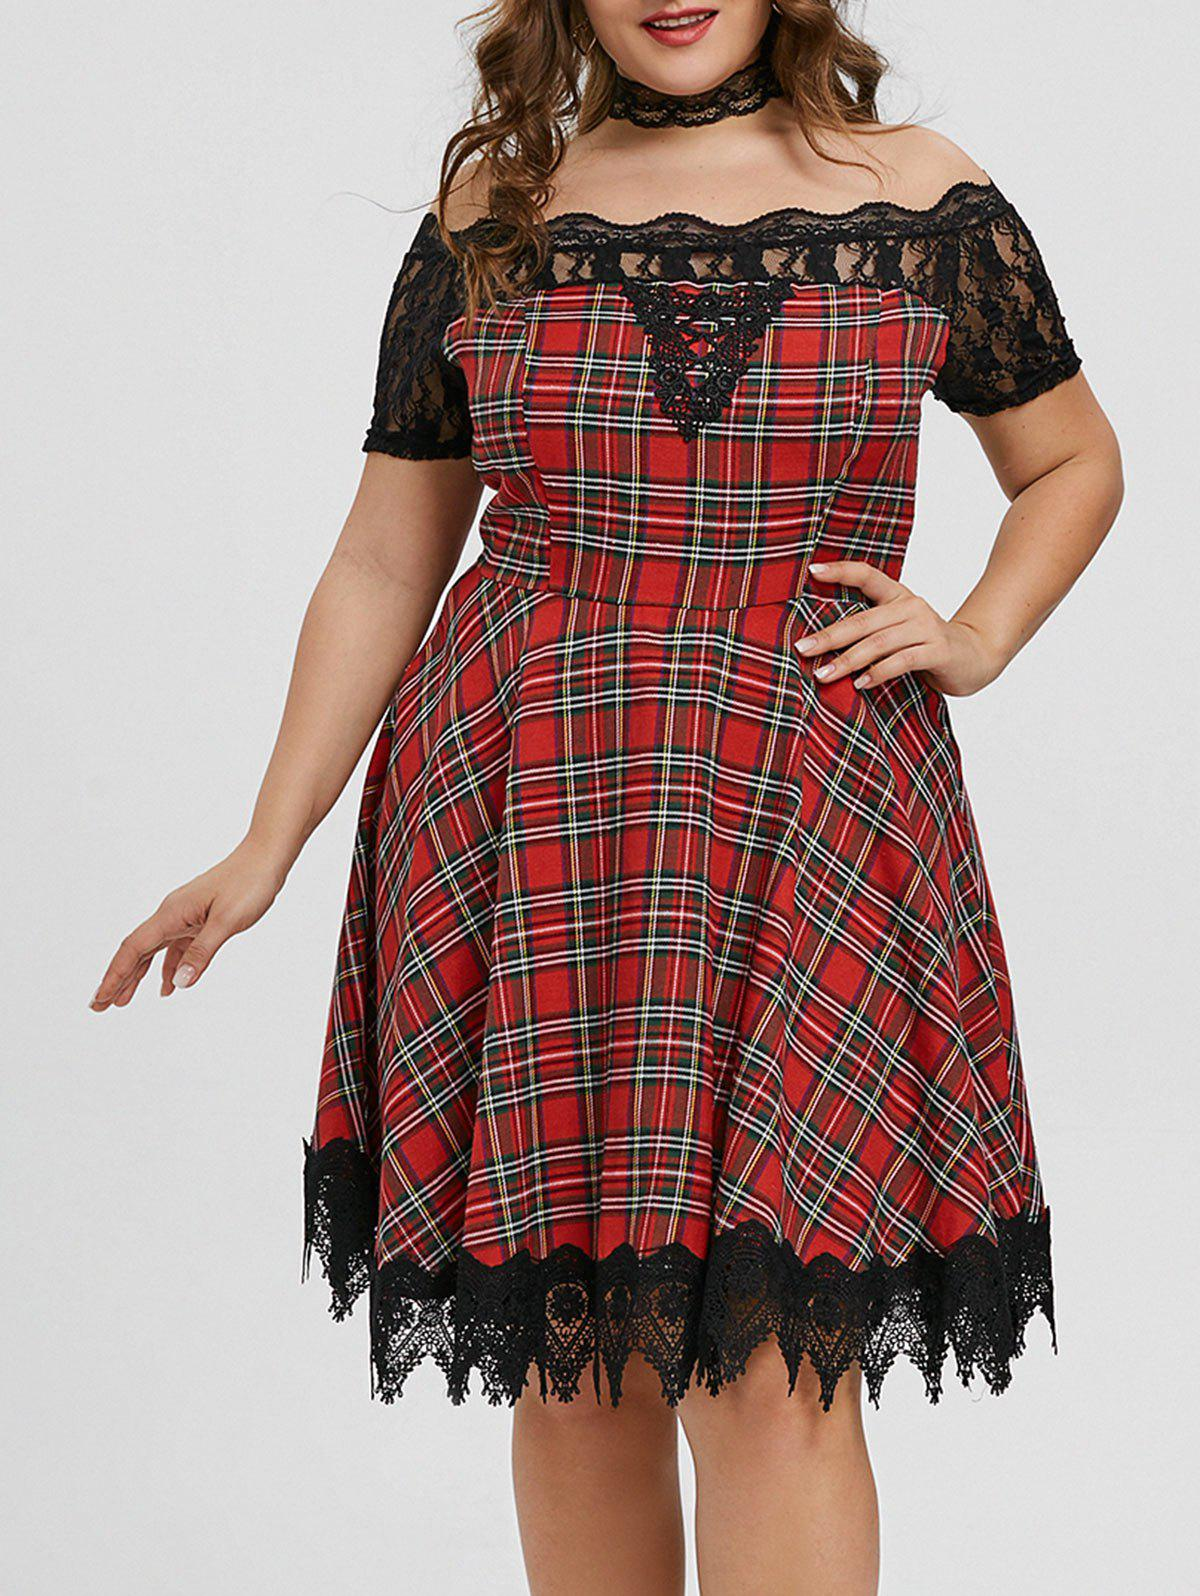 Shops Plaid Lace Insert Scalloped Plus Size Dress